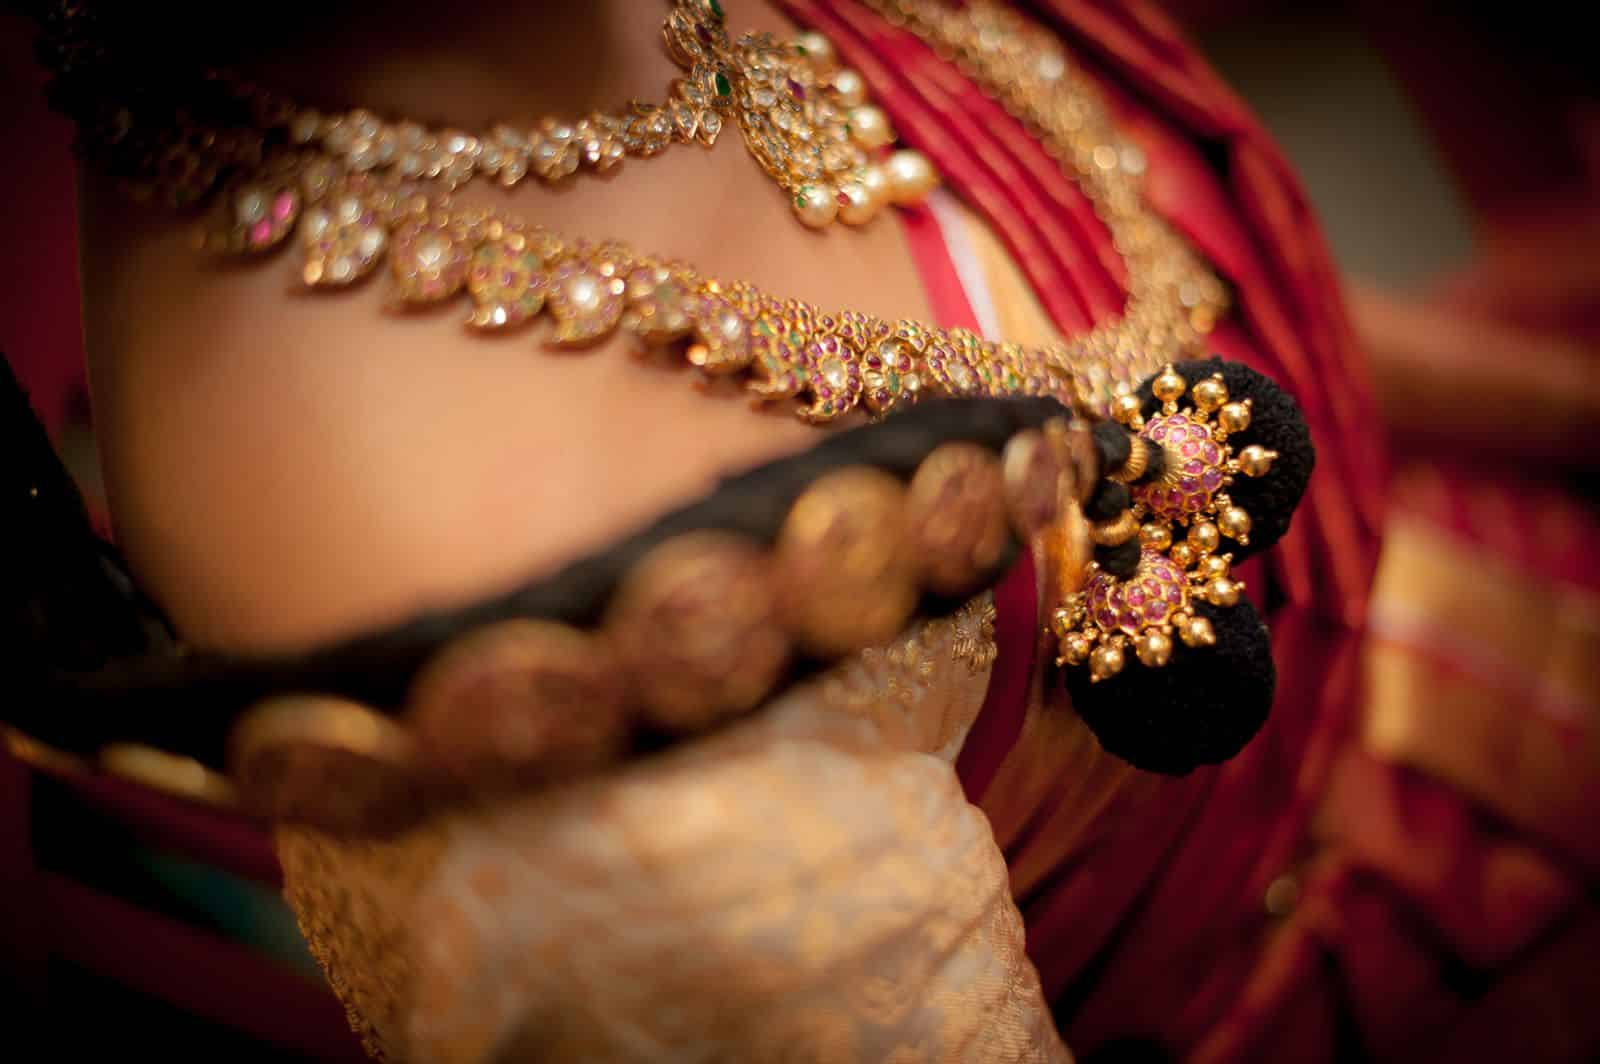 anoop-wedding-photographer-detail-south-indian-bride-gold-jewelry